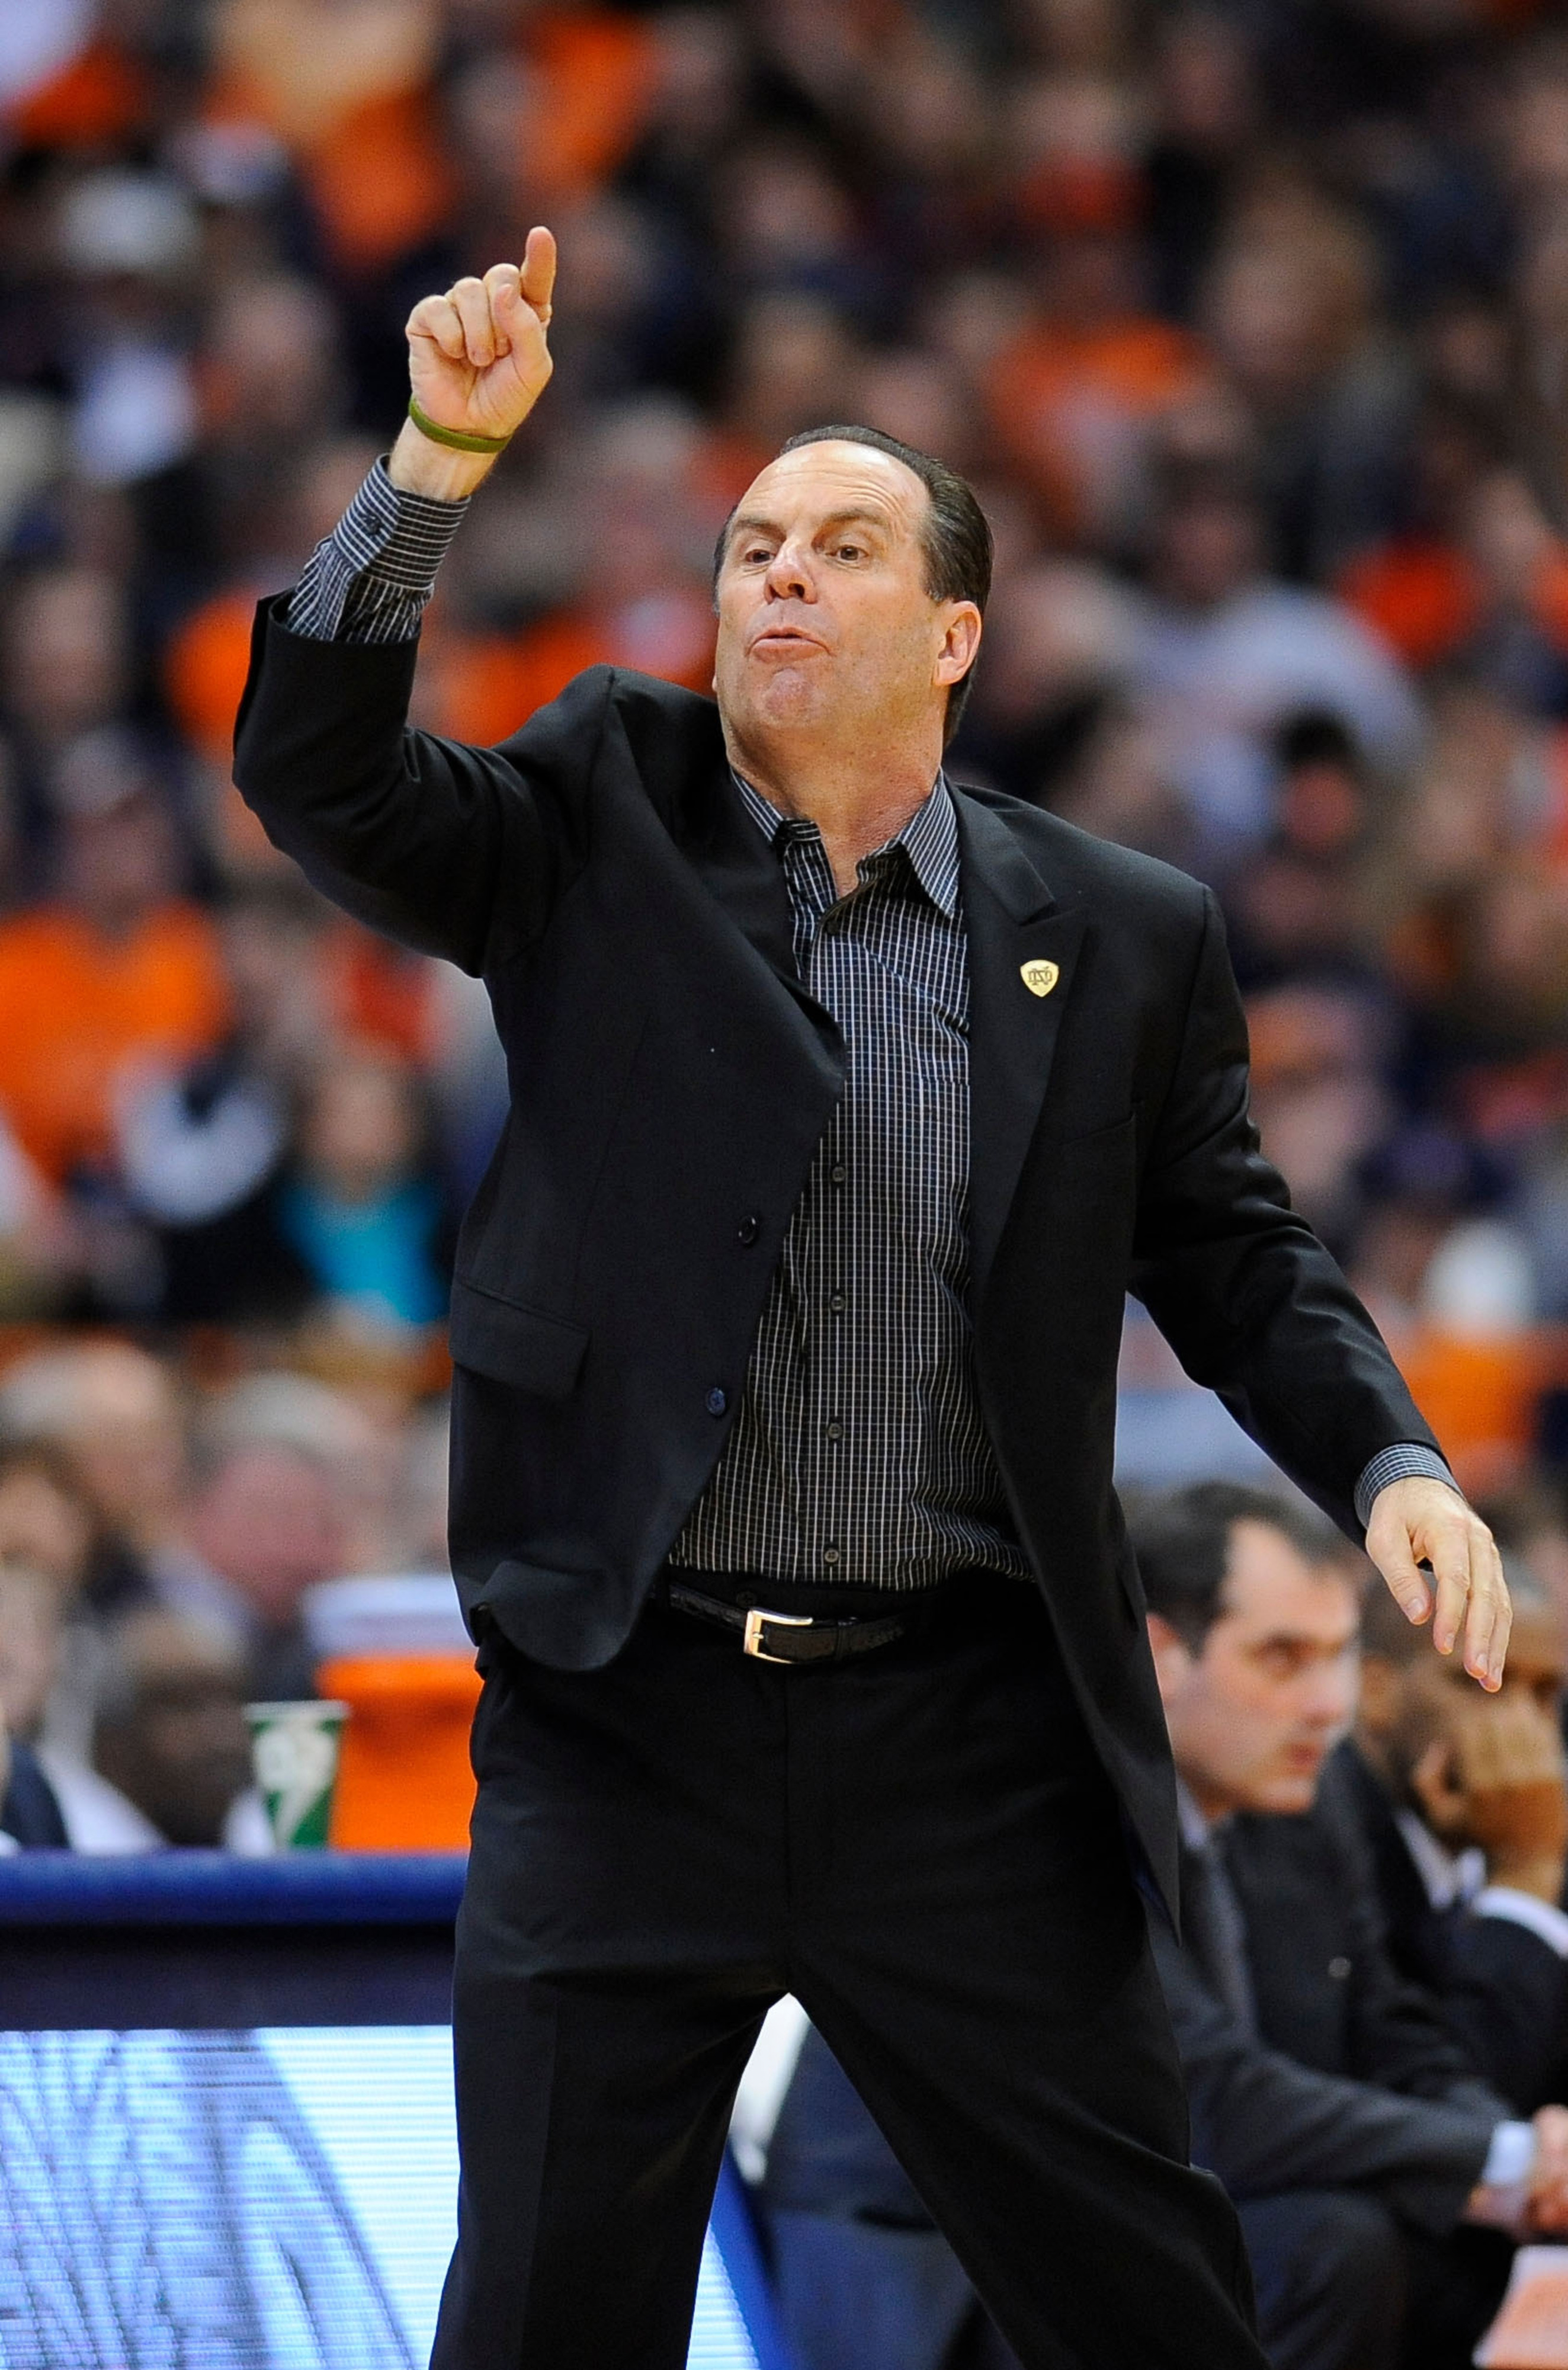 Am I crazy, or does Mike Brey look an awful lot like Bo Ryan in this picture?